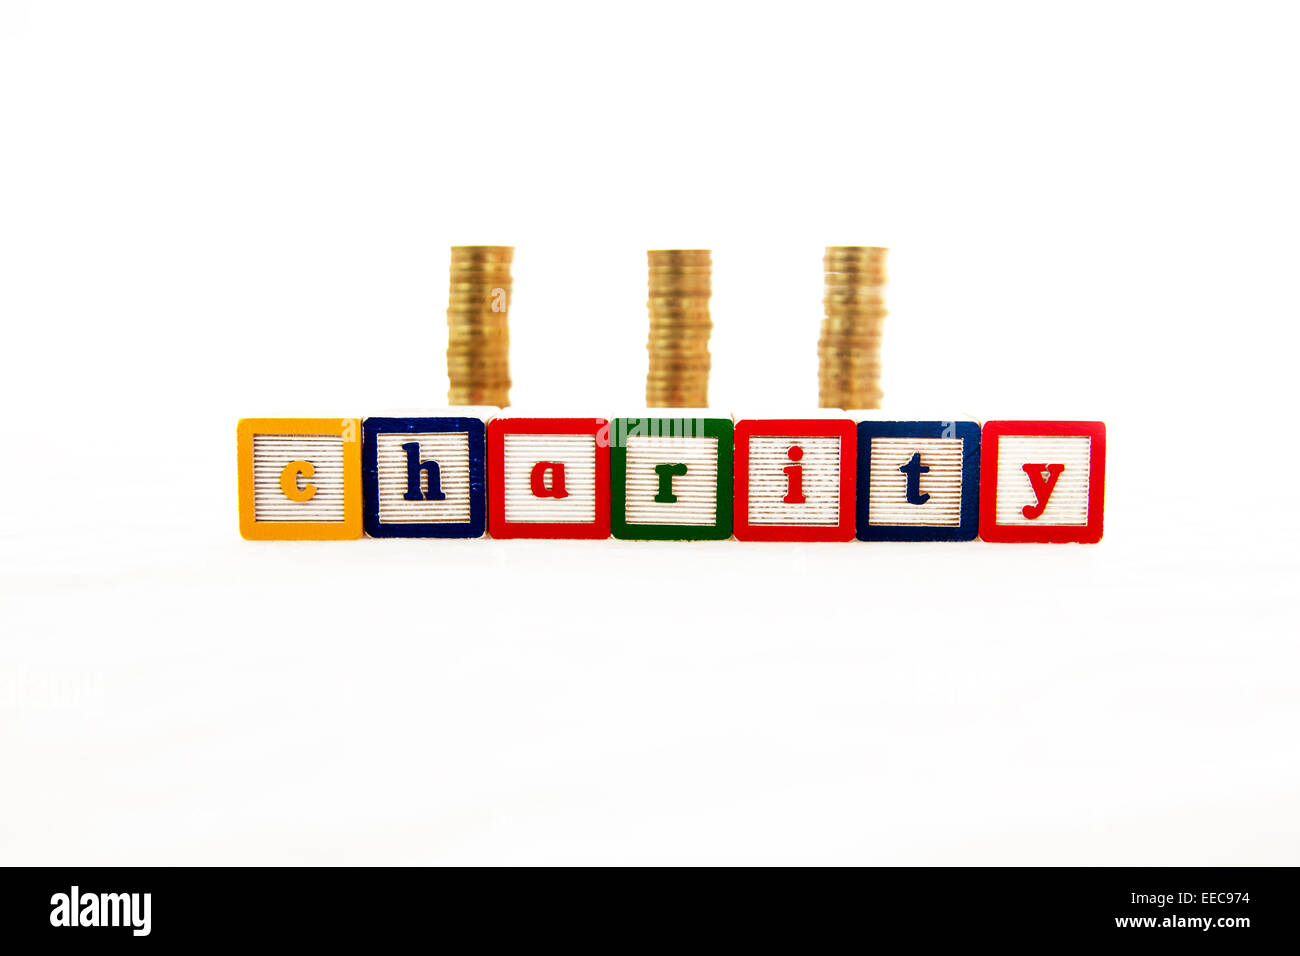 Charity fund funds money donation donations cash pounds coins word coin stacks cut out copy space white background - Stock Image